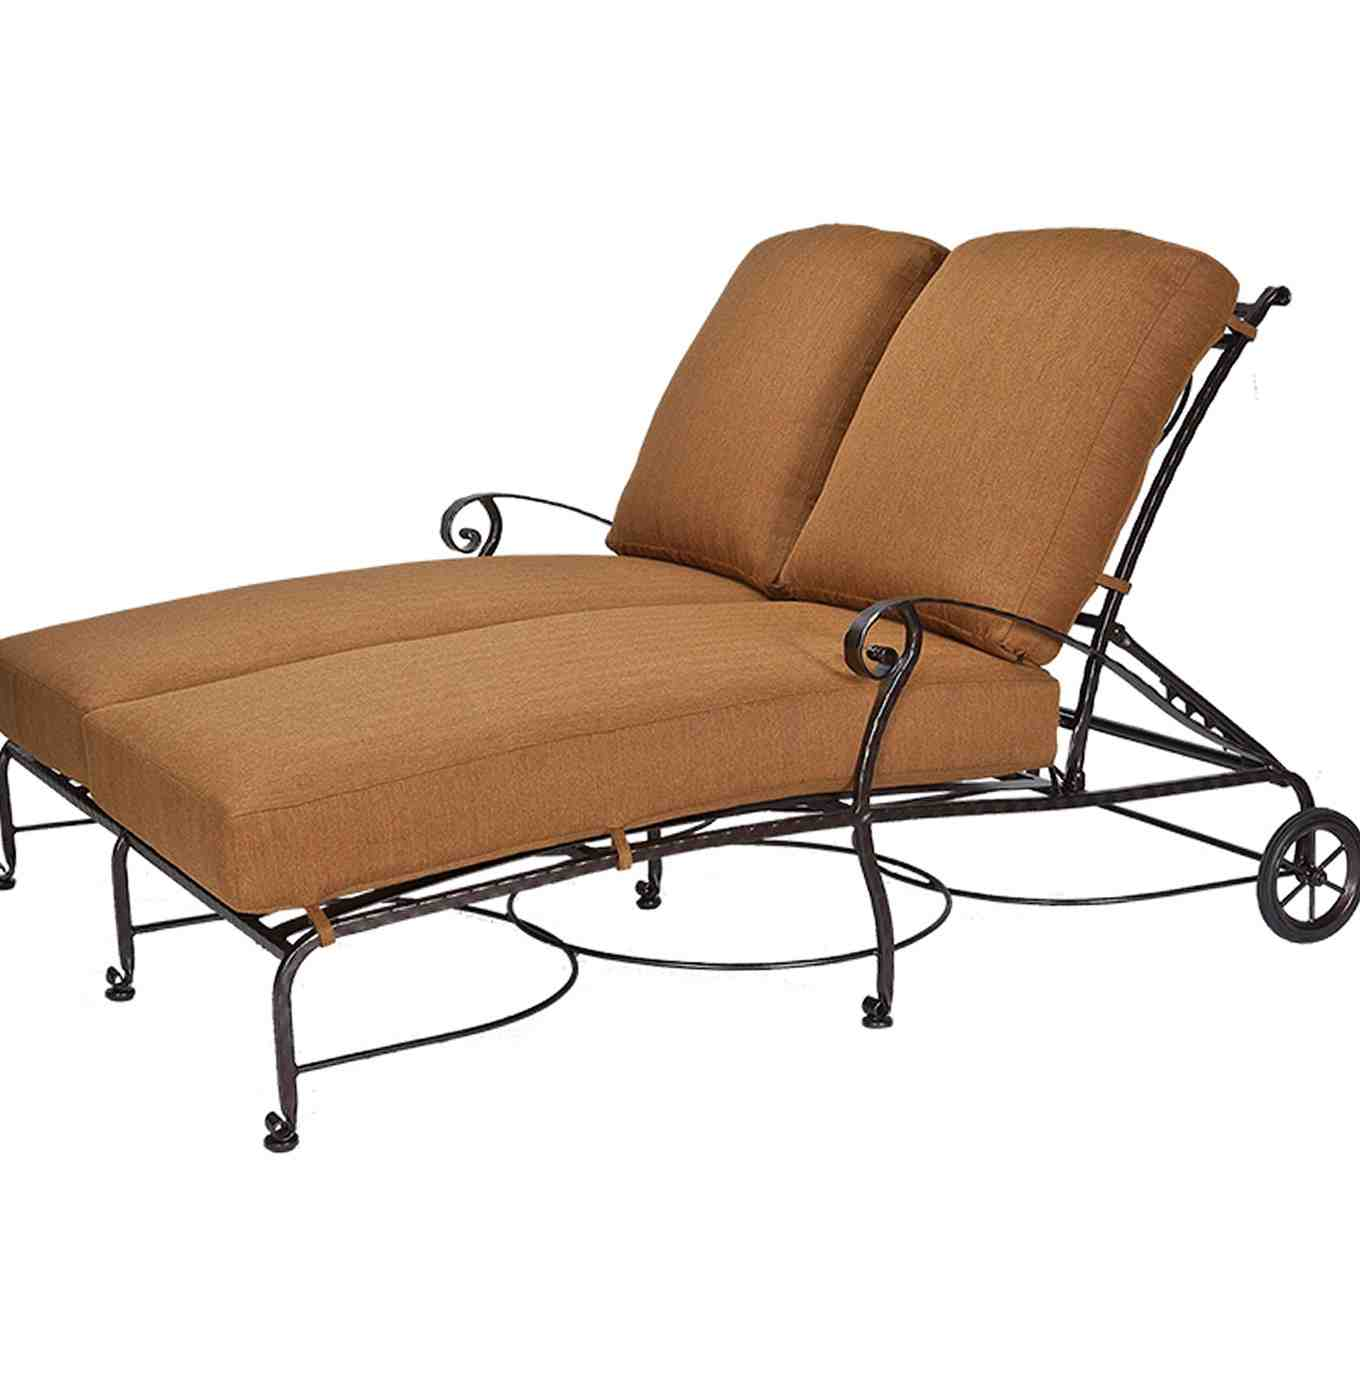 Double Chaise Lounge Cover Outdoor Furniture Home